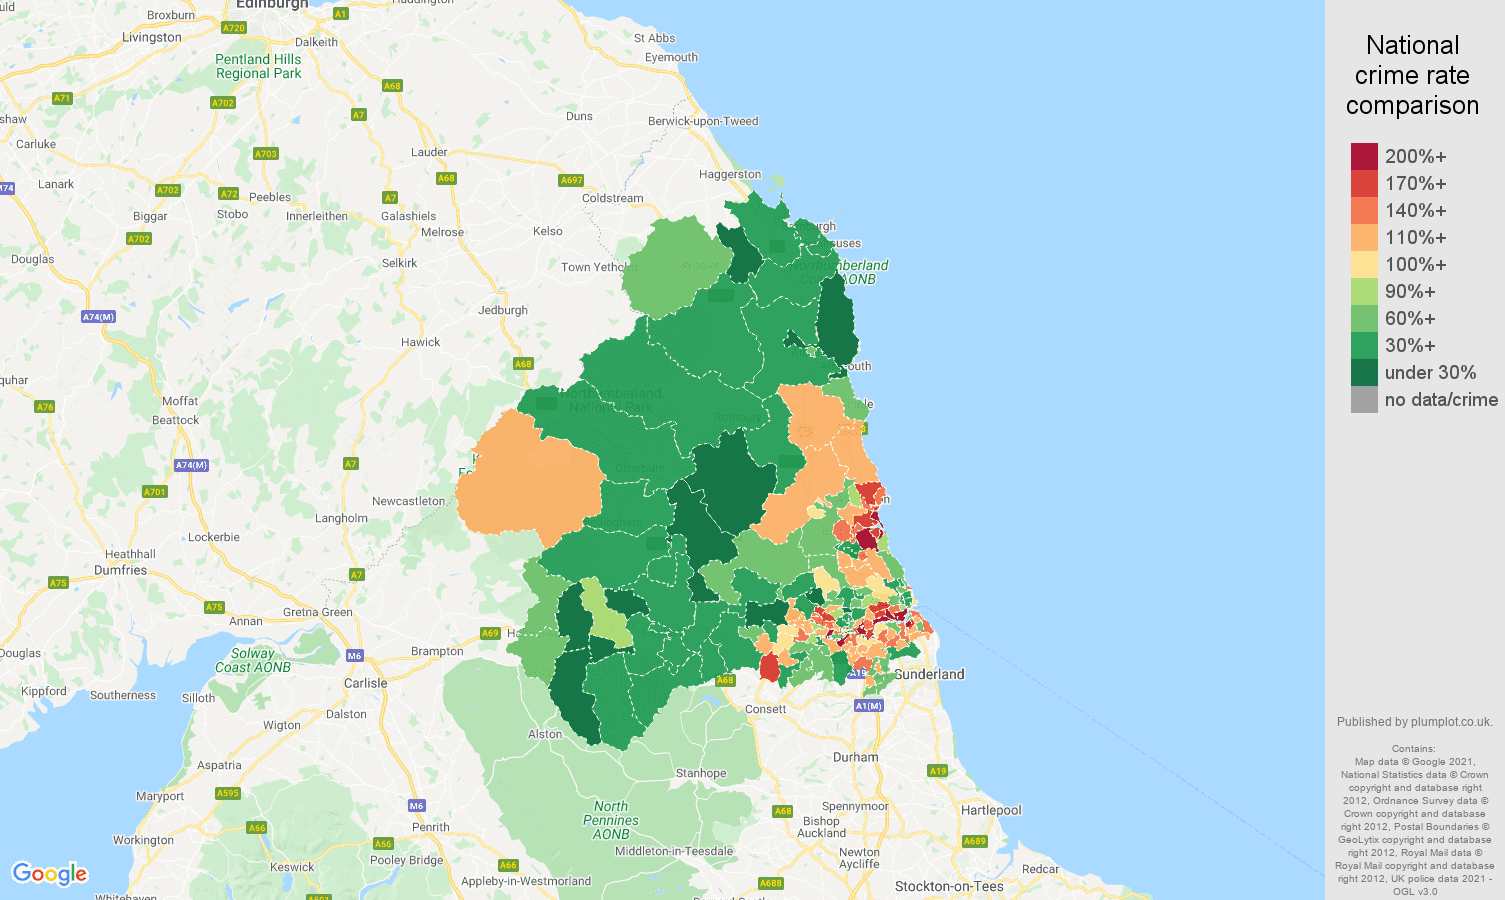 Newcastle upon Tyne violent crime rate comparison map